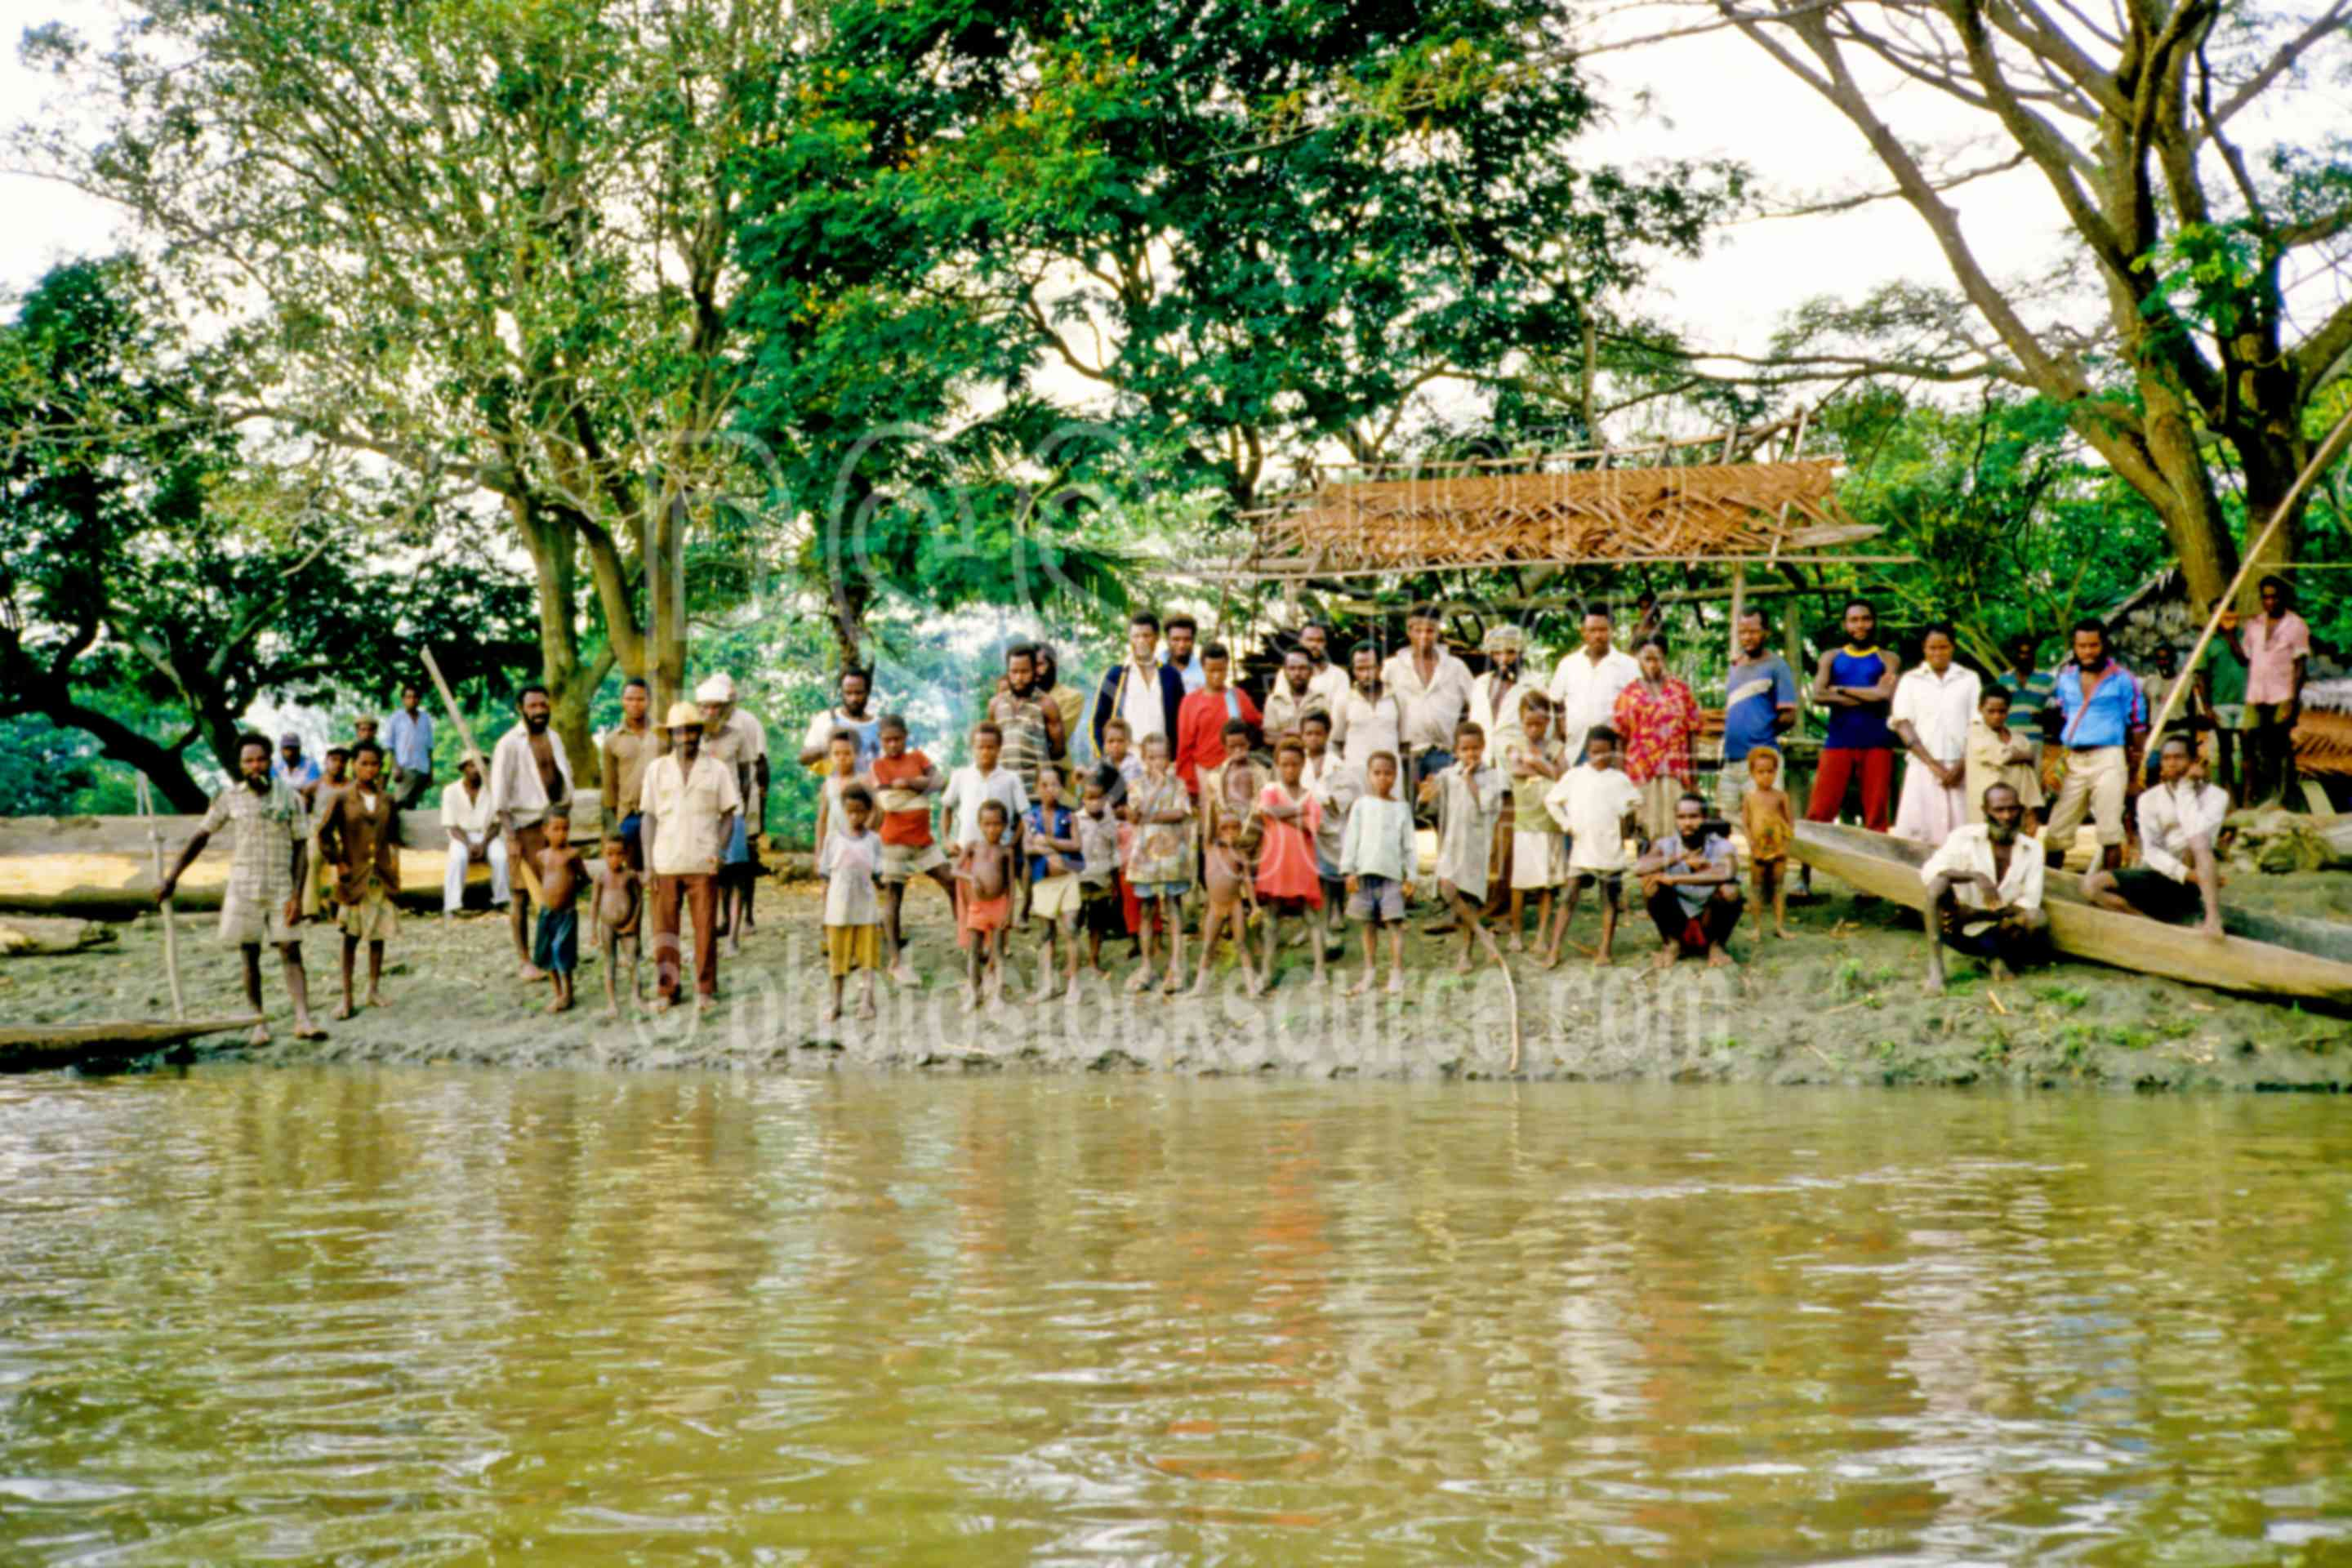 Villagers on riverbank,gathering,group,river,village,villagers,water